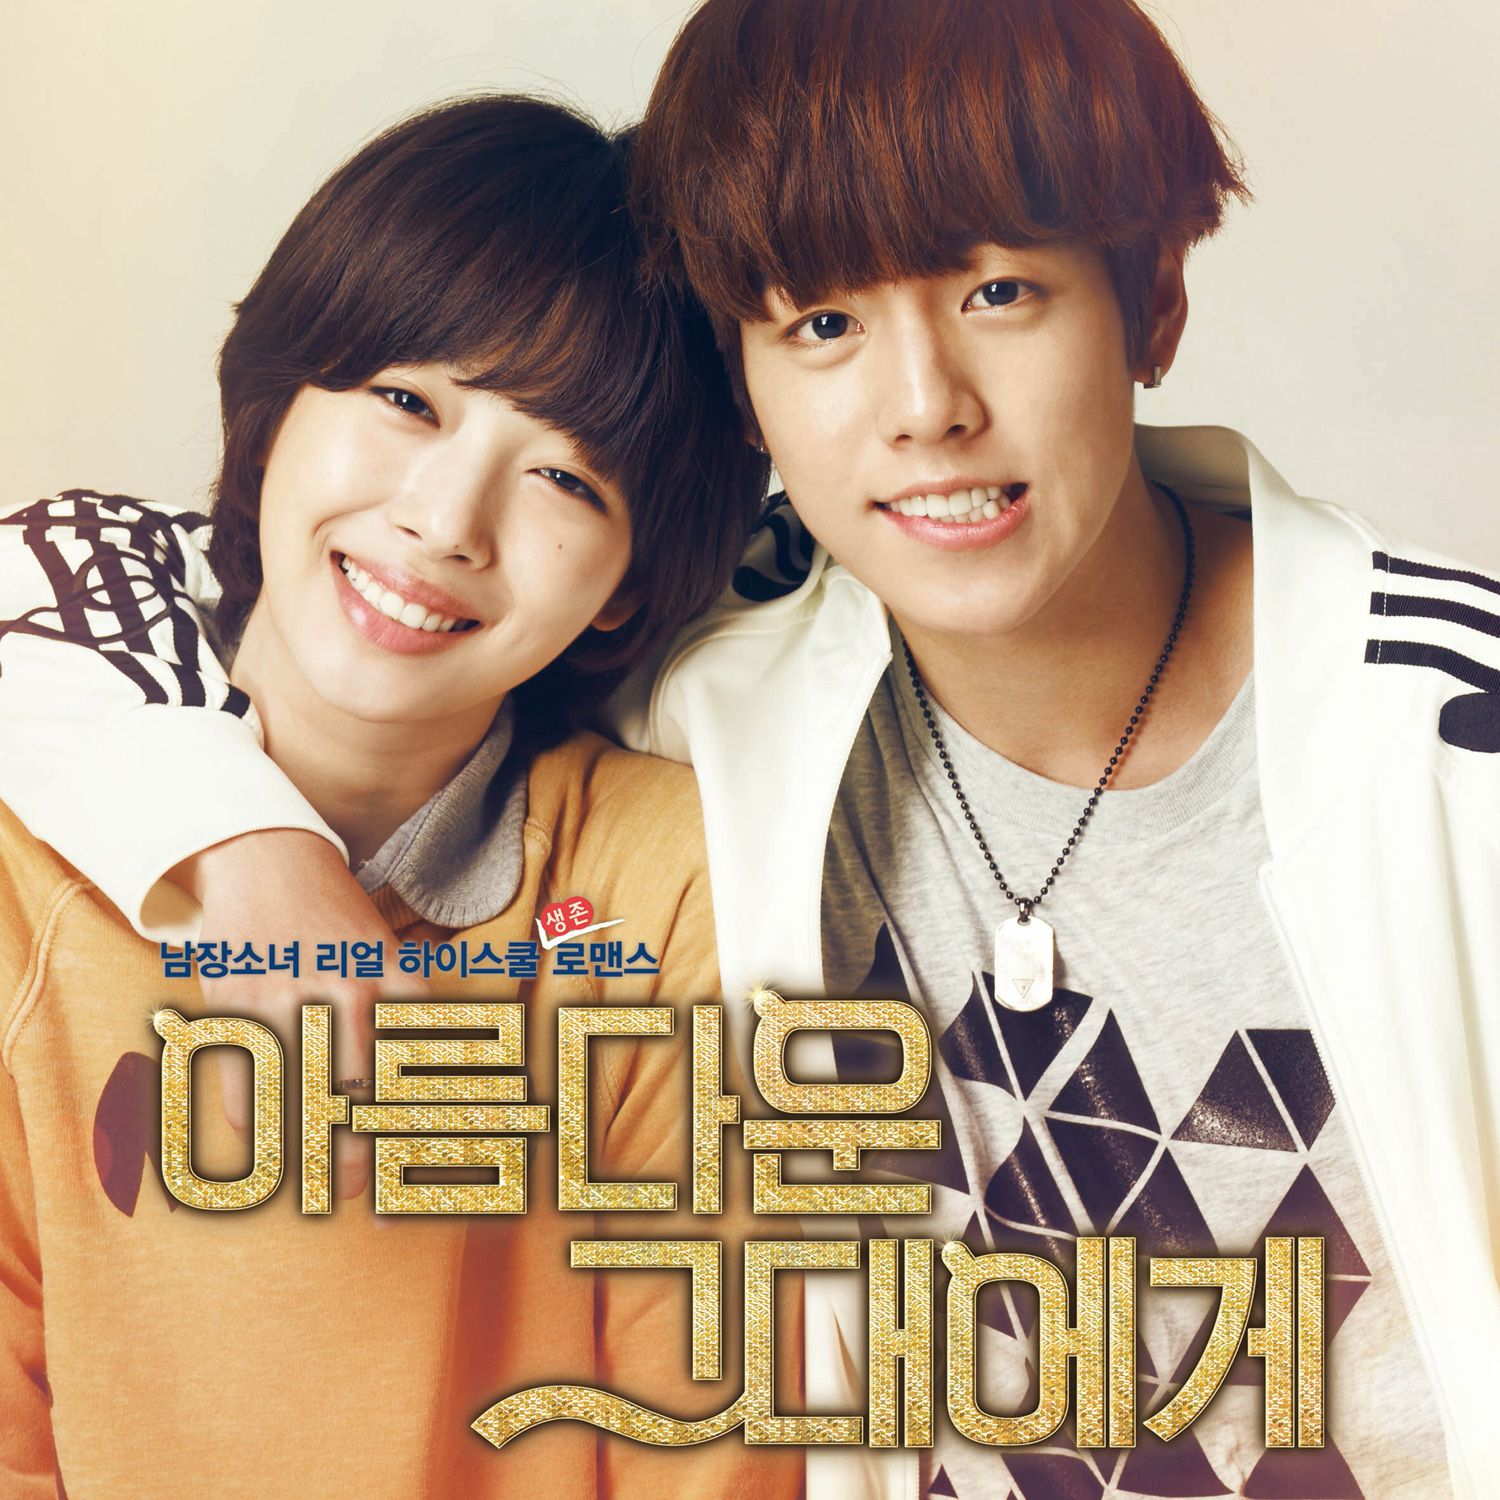 [Single] Kyu Hyun & Tiffany, Super Junior K.R.Y - To The Beautiful You OST Part. 3